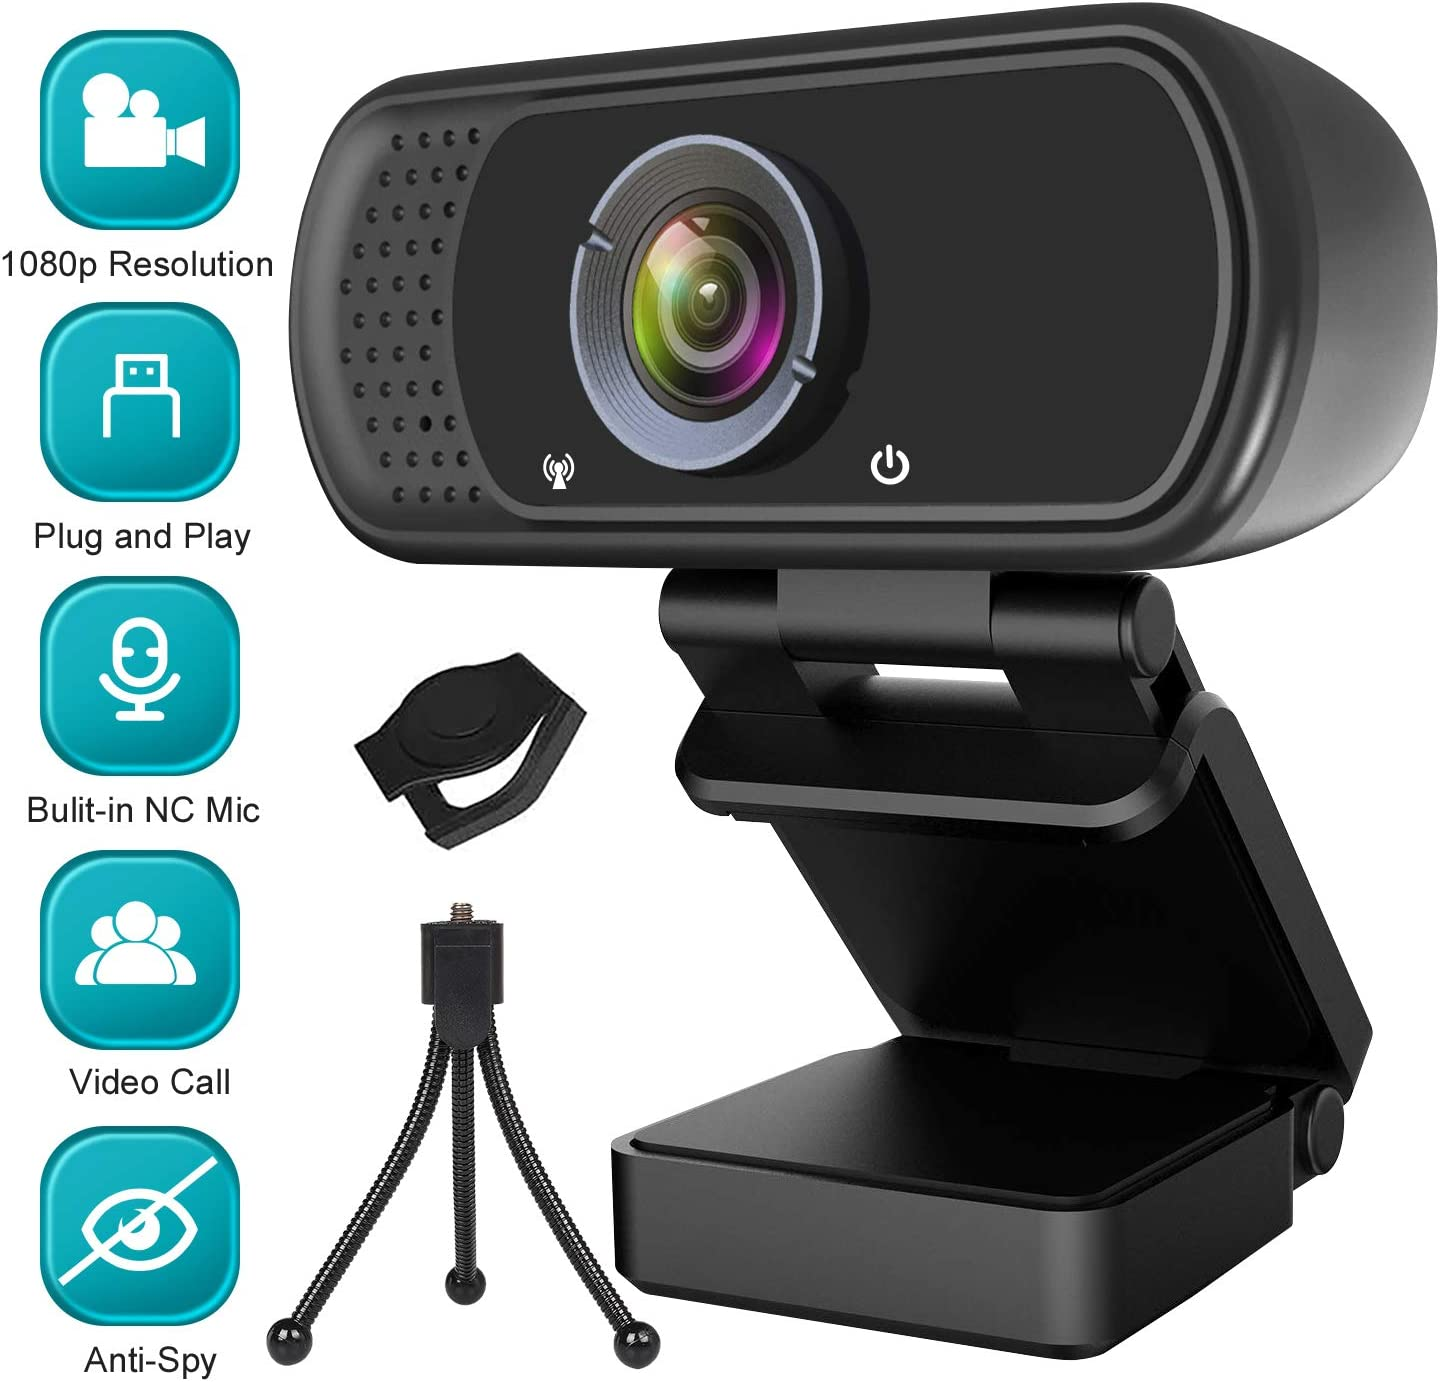 1080P Webcam Web Camera with Microphone, HD Webcam Computer Cam with Cover and Stand, Plug & Play Webcam for PC Laptop Desktop Smart TV Video Streaming, Gaming, Conference, Online Classes Zoom Skype